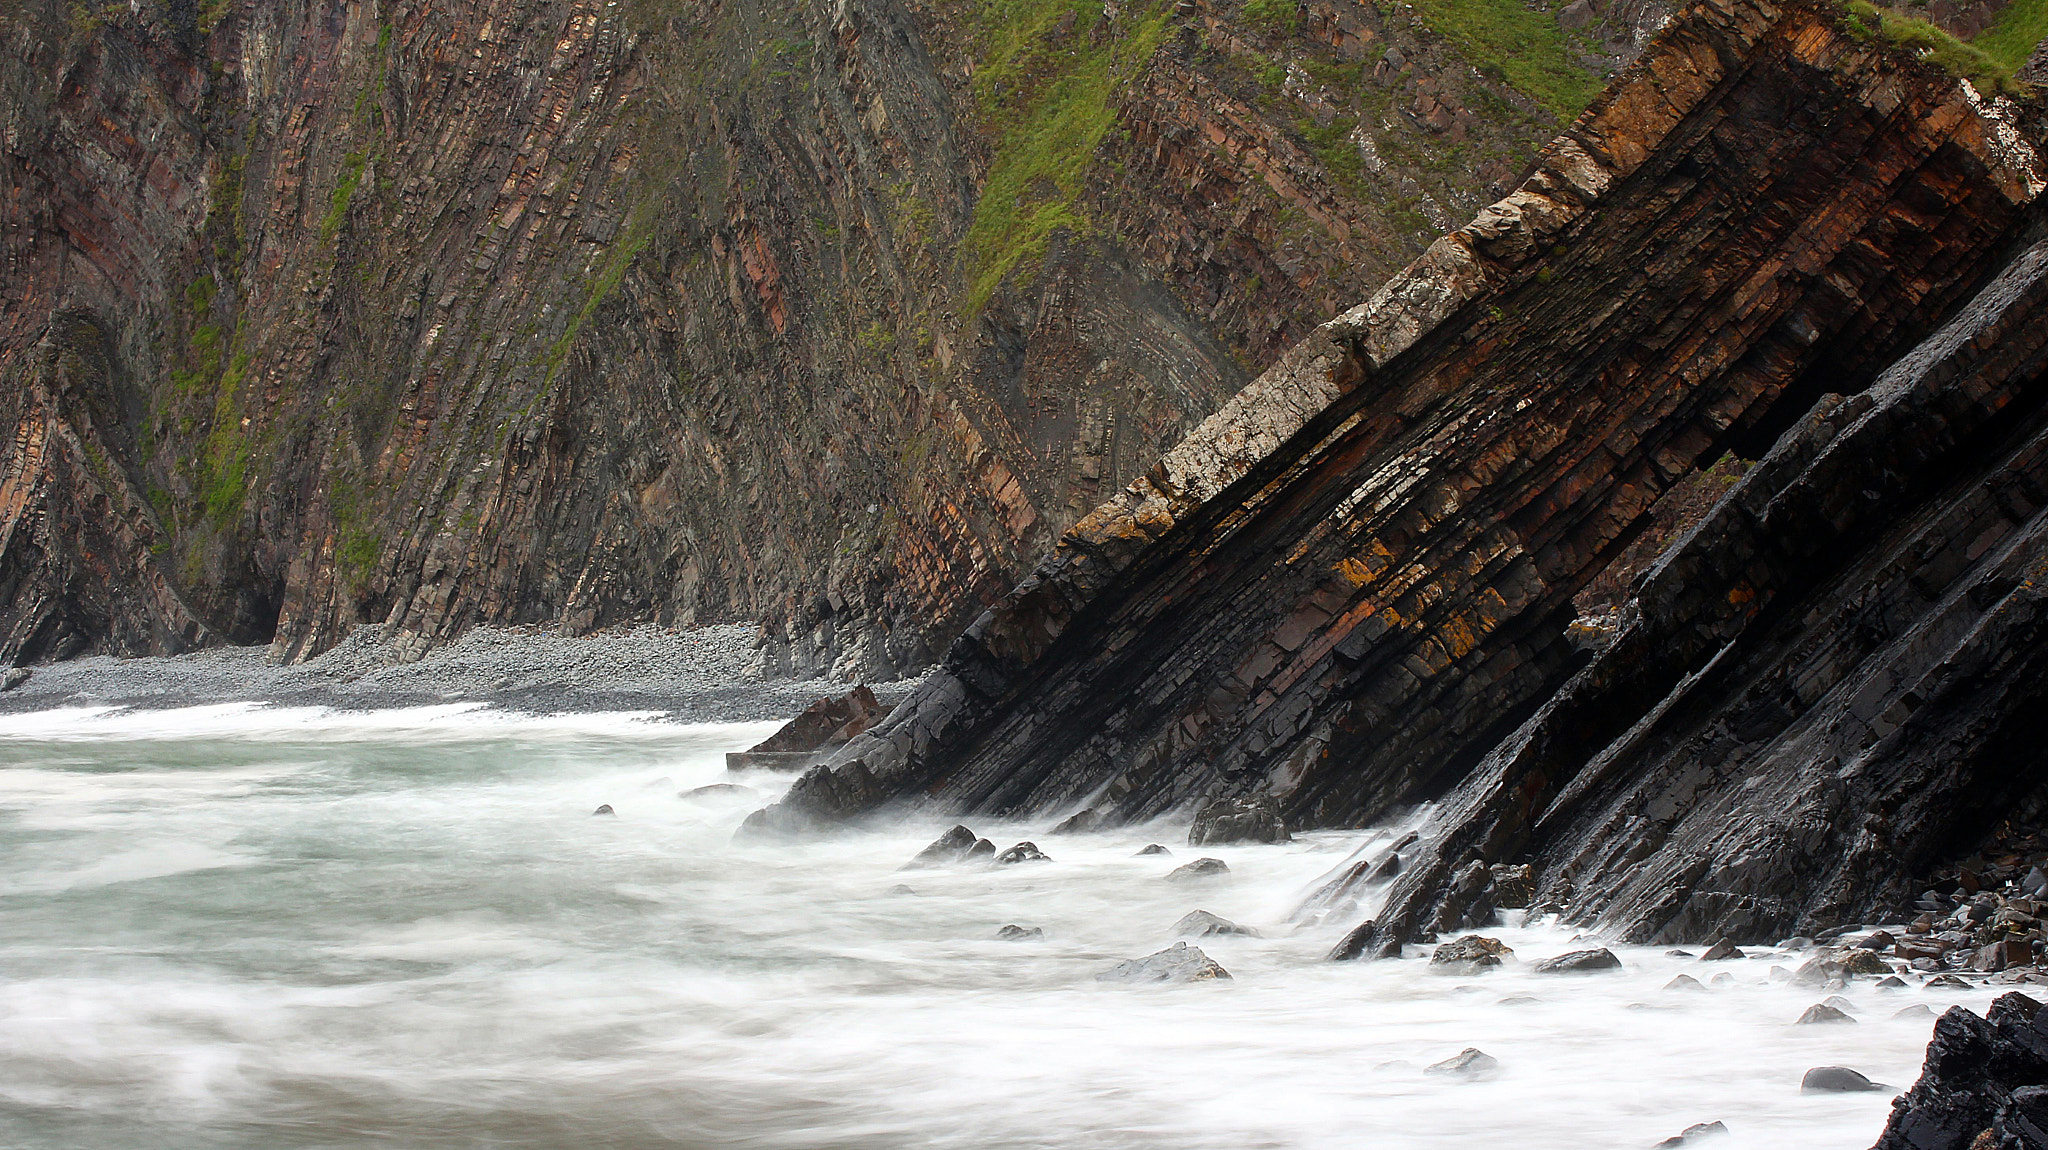 Photograph Cliffs and the Waves by Sam Barnwell on 500px